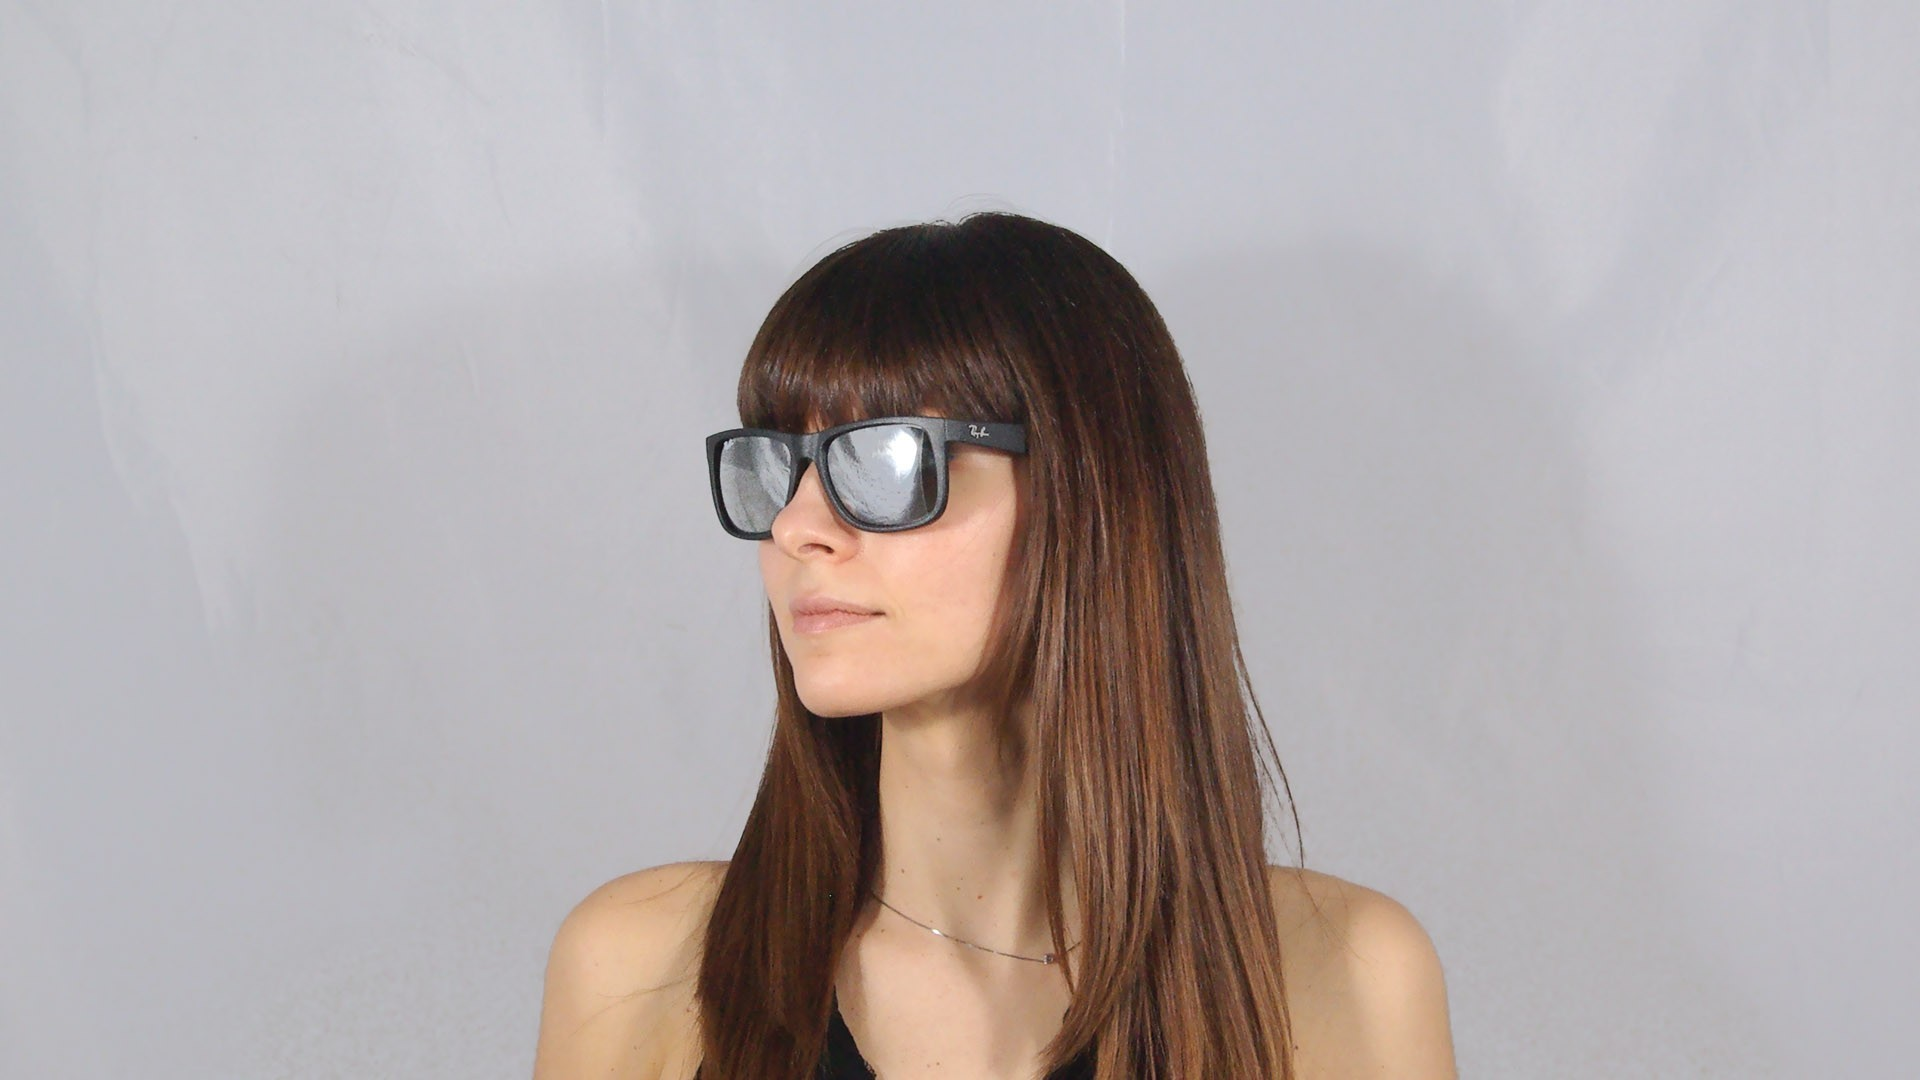 f2d658272d2 ... where can i buy sunglasses ray ban justin black rb4165 622 6g 55 16  large mirror